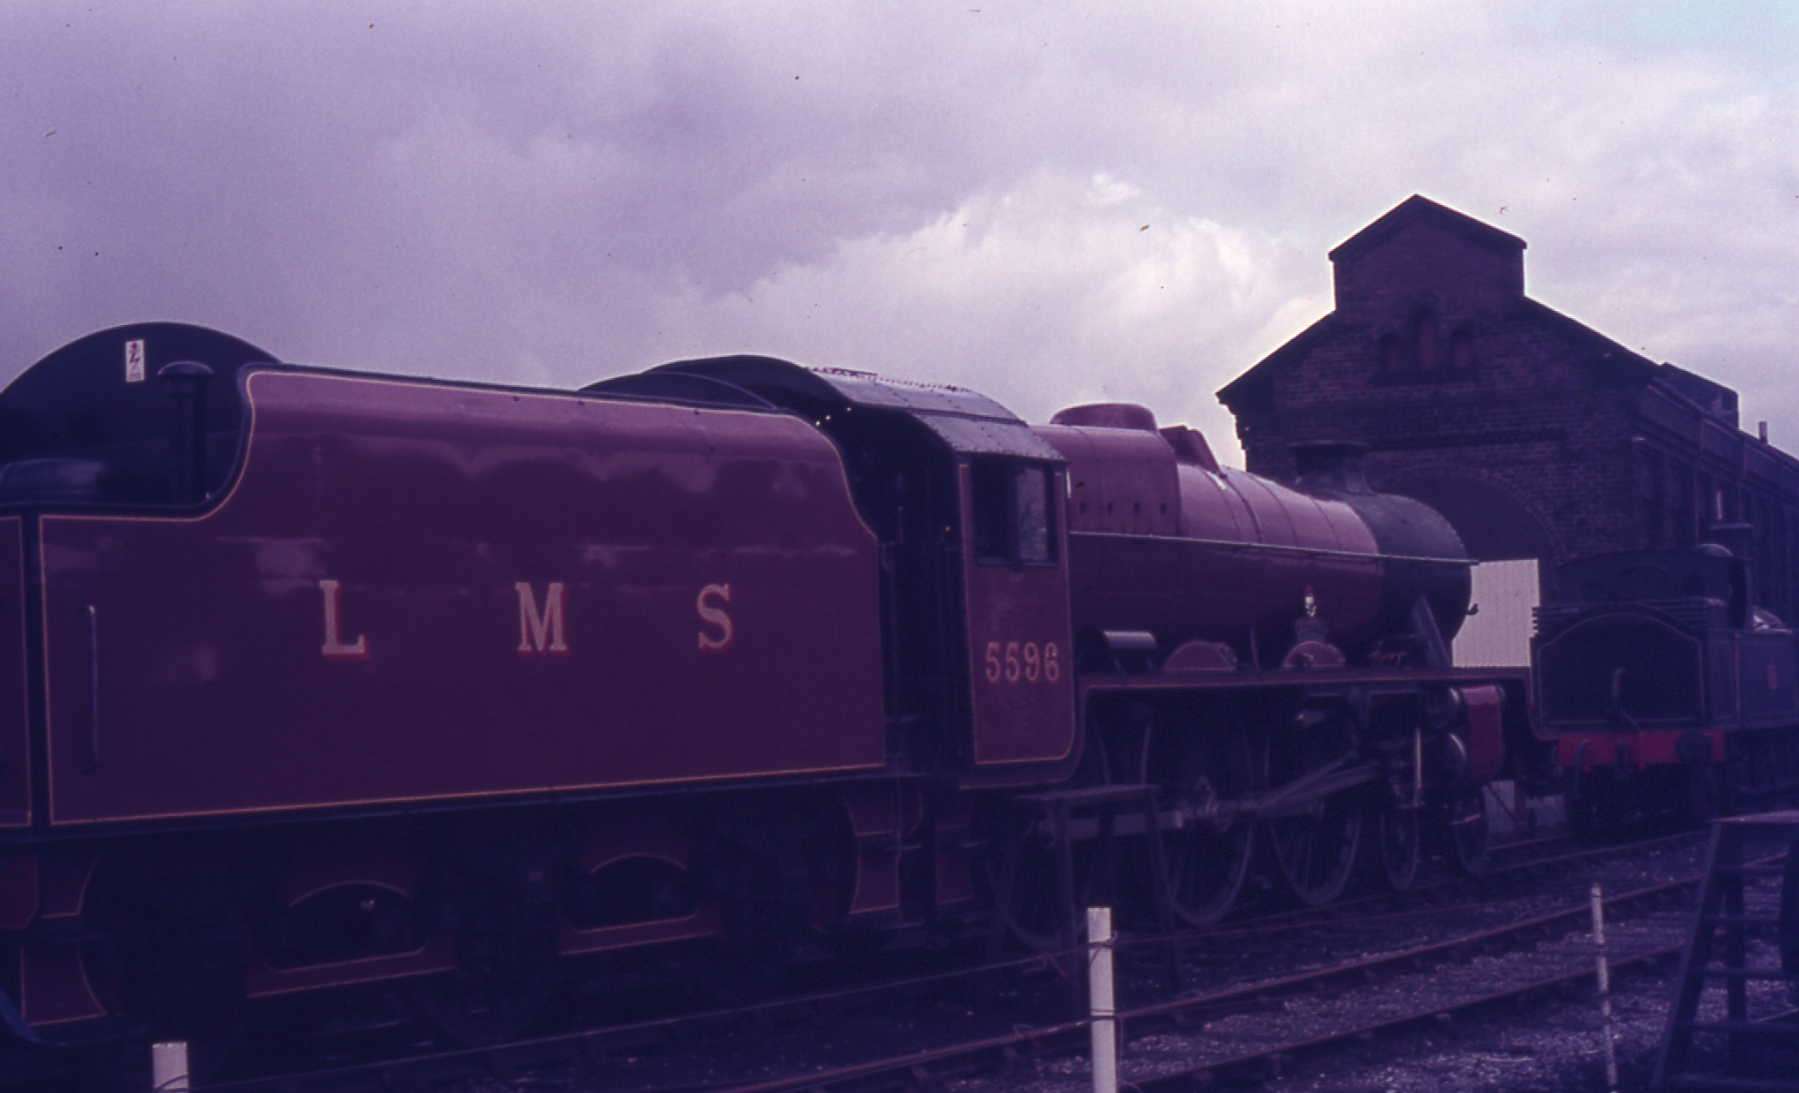 5596 Bahamas Preserved at Dinting in LMS livery in 1980